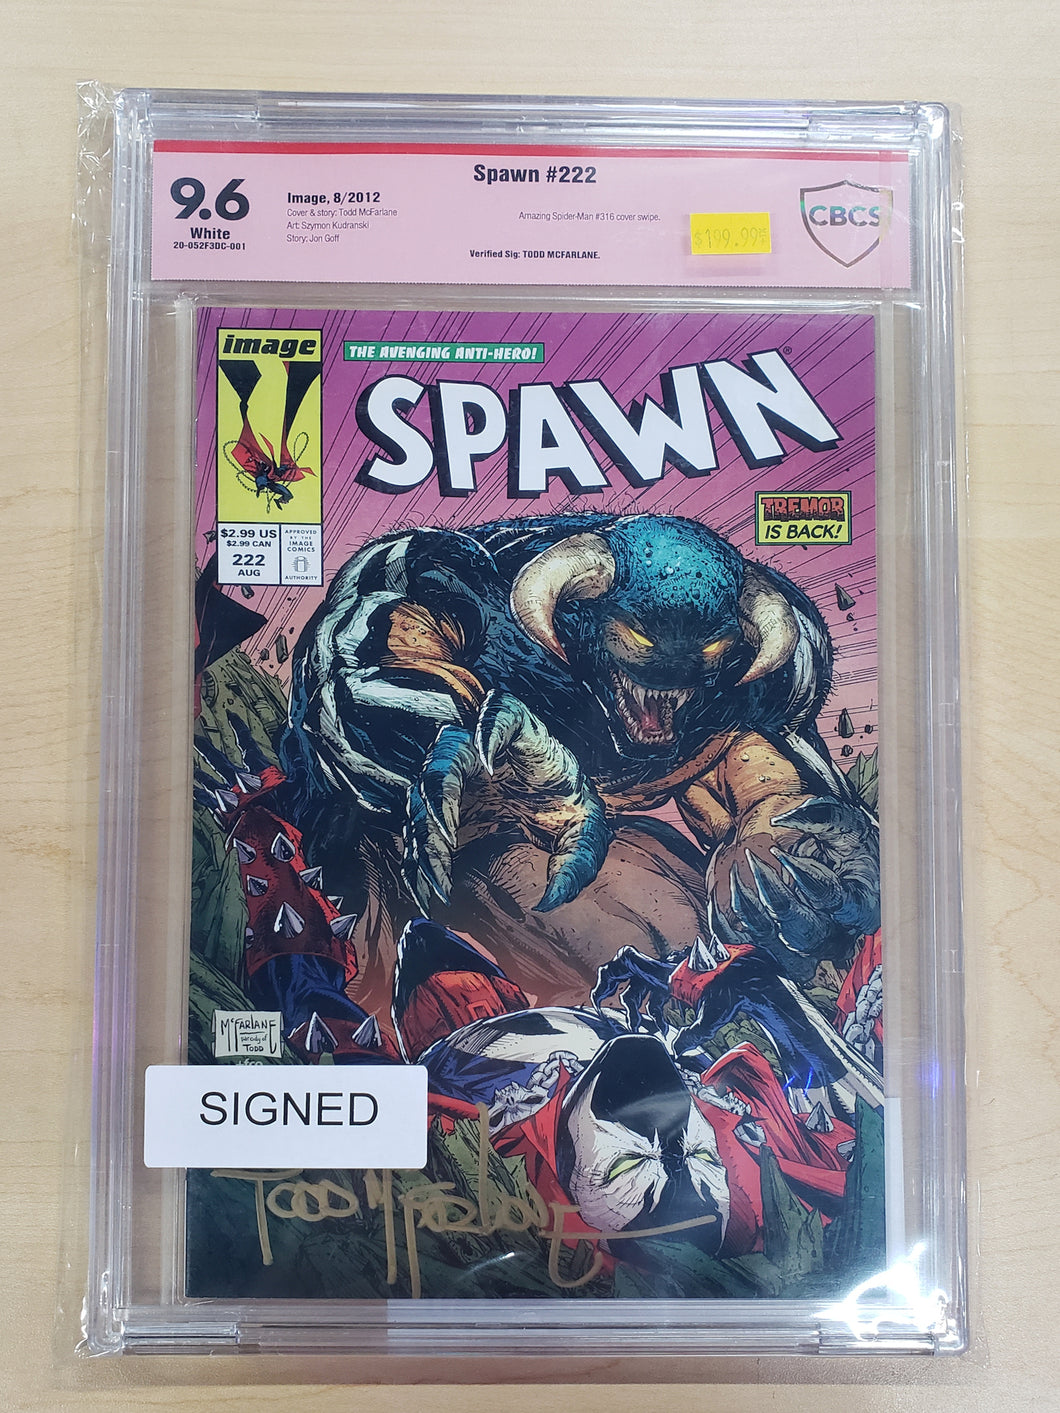 SIGNED Spawn #222 CBCS 9.6